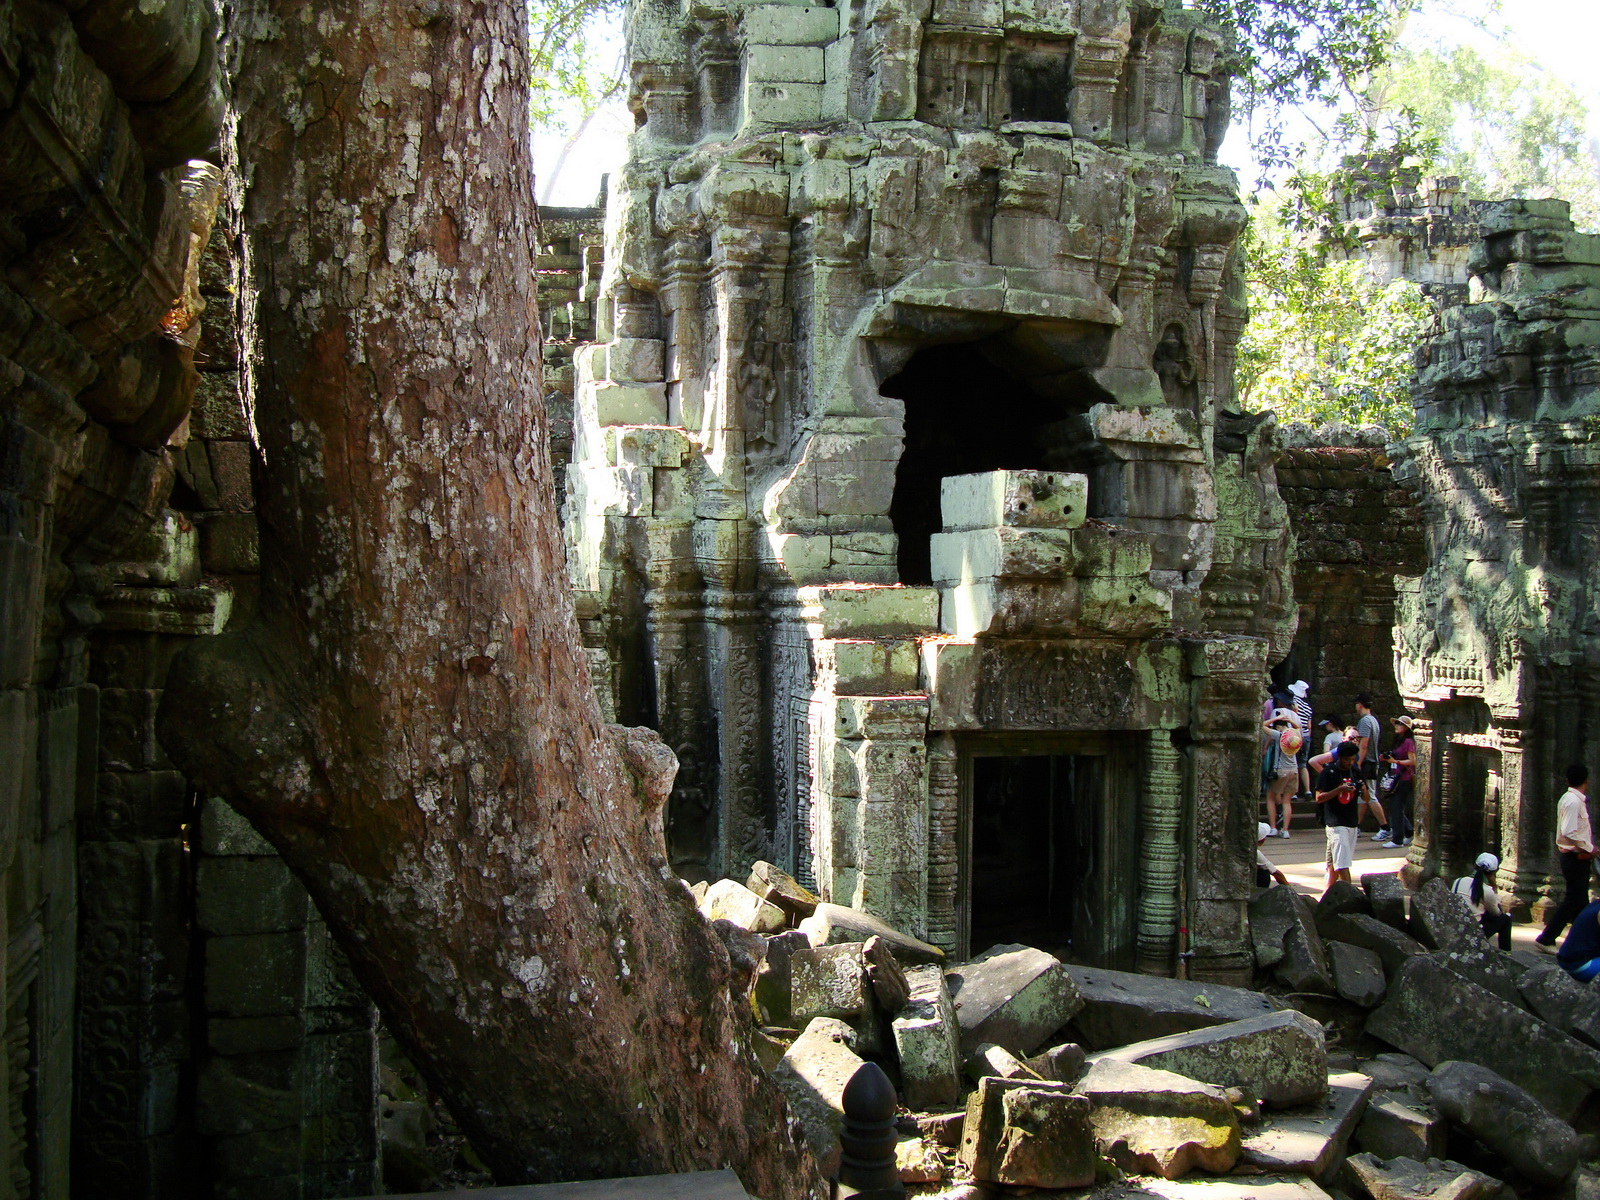 Ta Prohm Tomb Raider Bayon architecture central sanctuary area 19